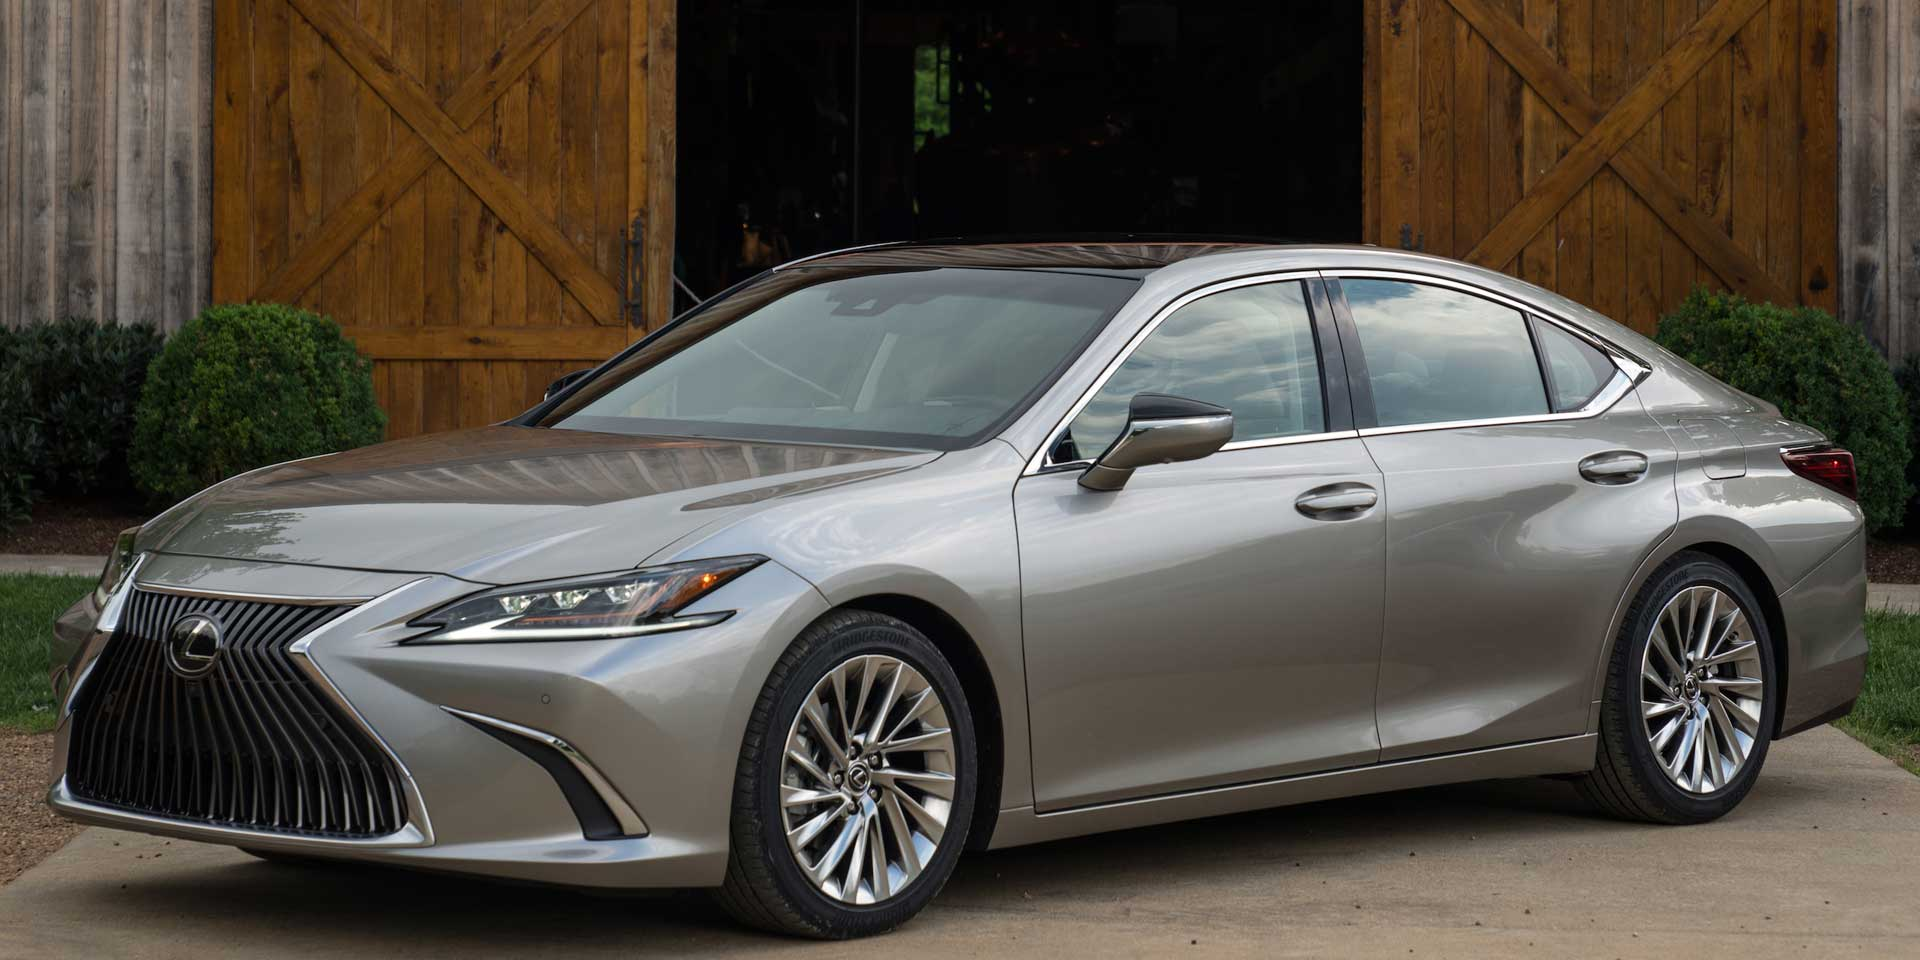 2019 - Lexus - ES - Vehicles on Display | Chicago Auto Show